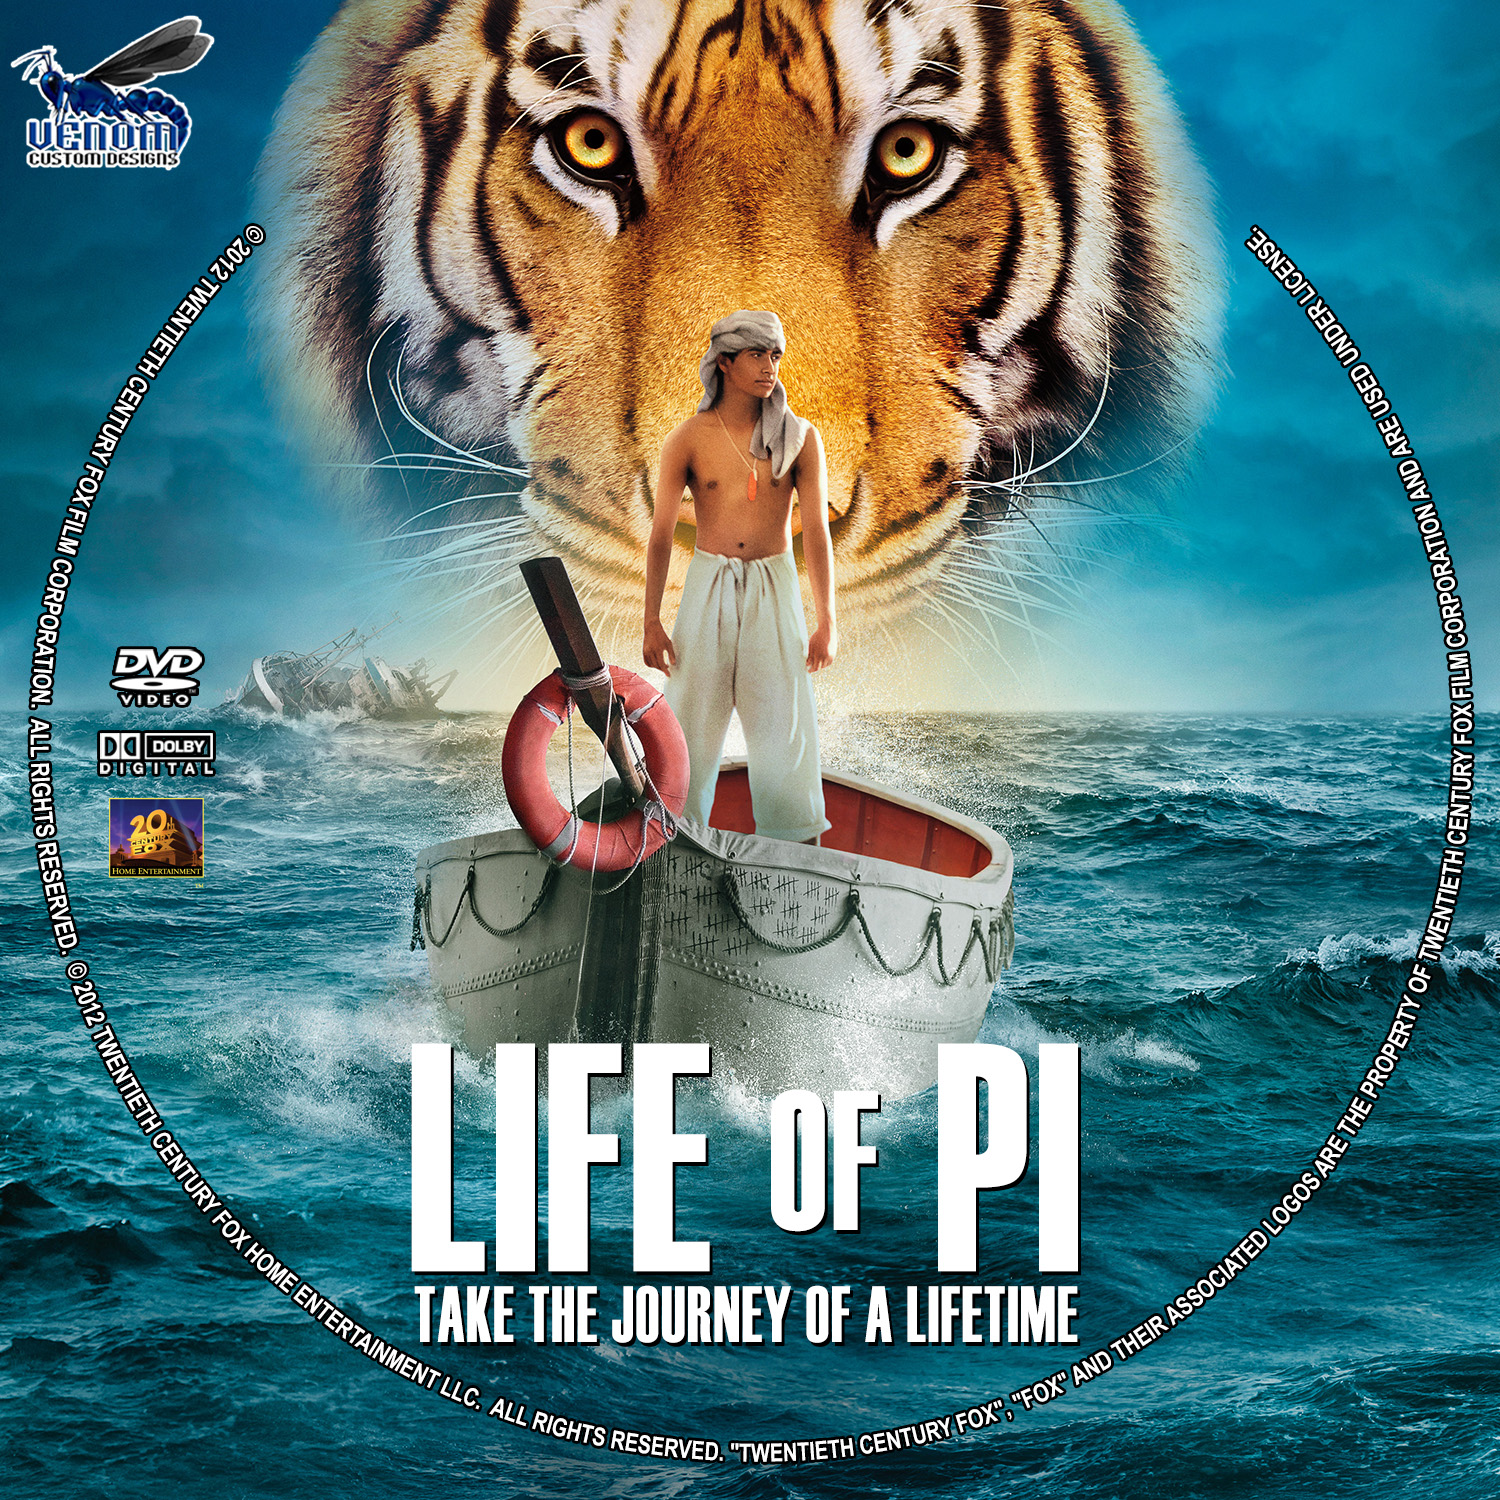 journey life of pi journey In life of pi, pi learns to understand that reality is merely an interpretation of our faith pi's journey of finding his faith was, in the most part, conducted whilst at sea with richard parker this can be seen in part 3 of the novel, where pi is interviewed by officials from the japanese ship company.